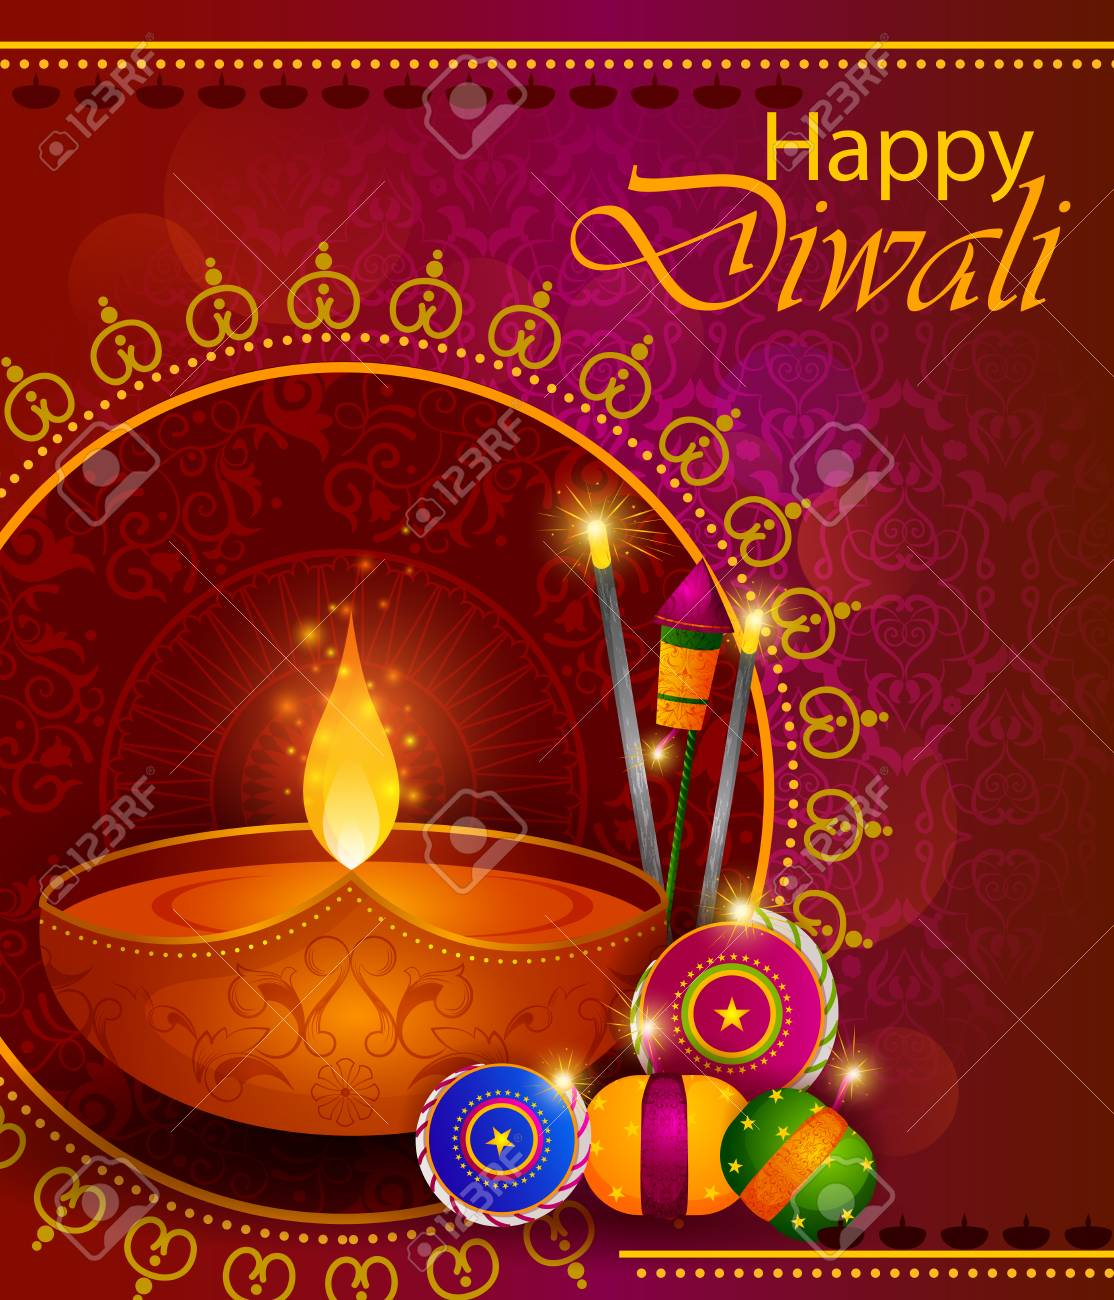 Happy diwali light festival of india greeting background royalty happy diwali light festival of india greeting background stock vector 87271461 m4hsunfo